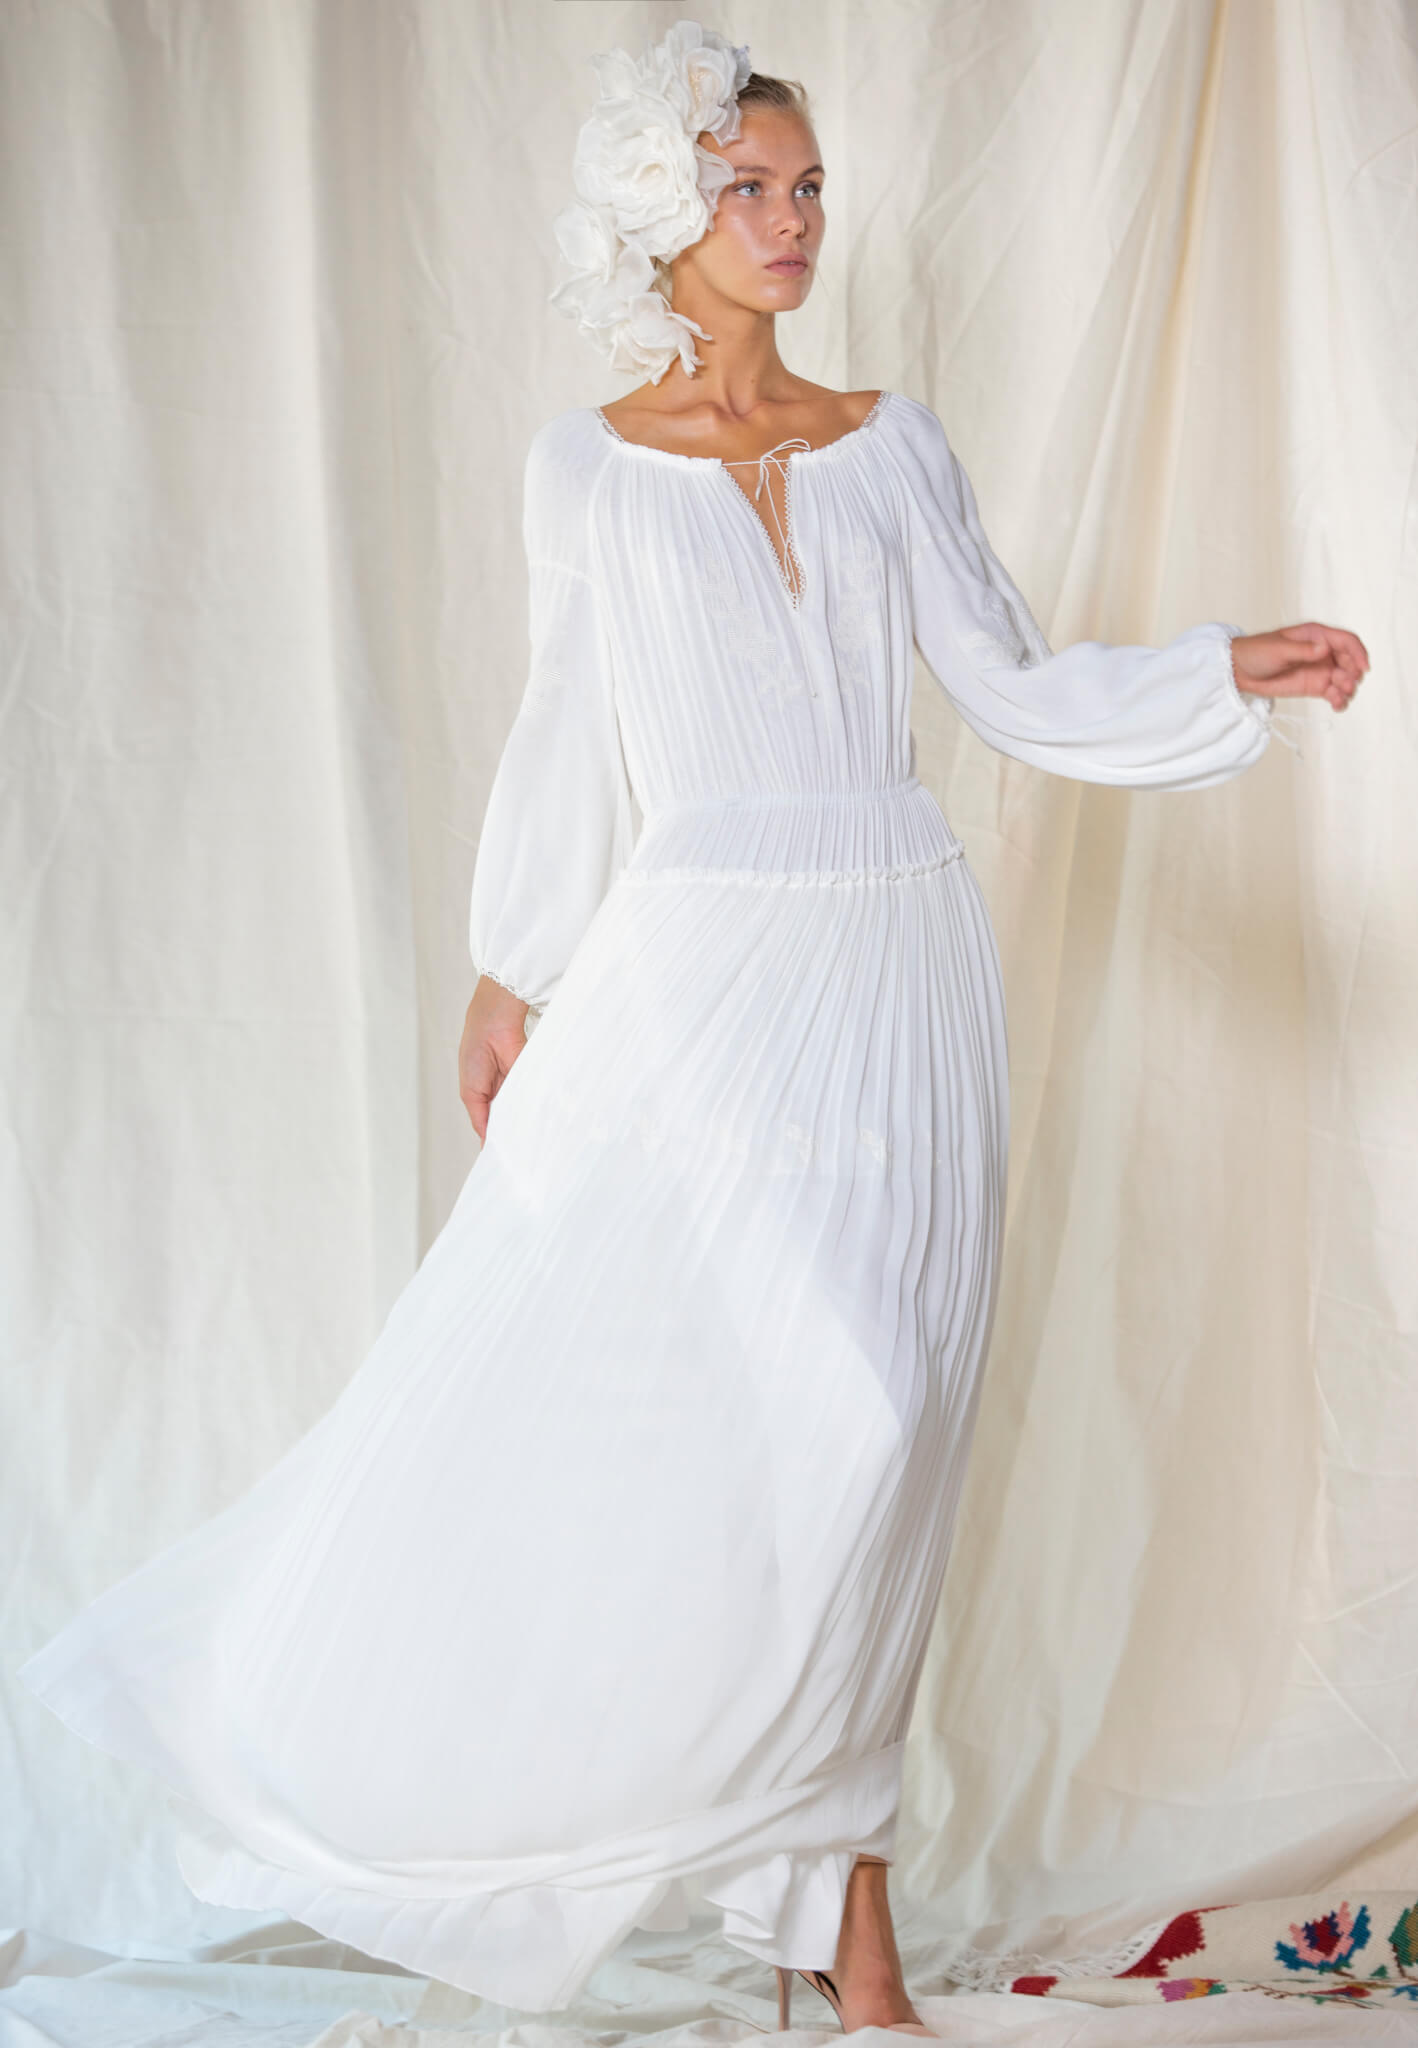 Bride silk dress with embroidery